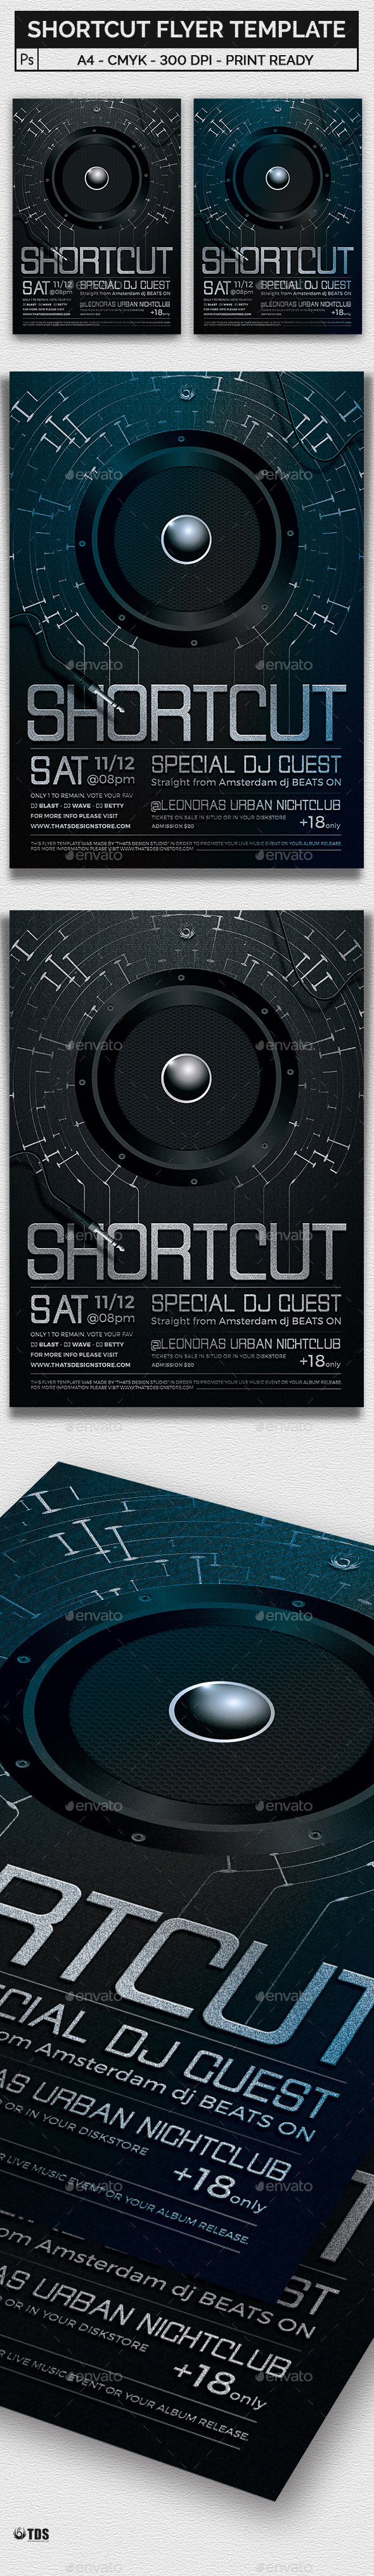 Shortcut Flyer Template - Clubs & Parties Events